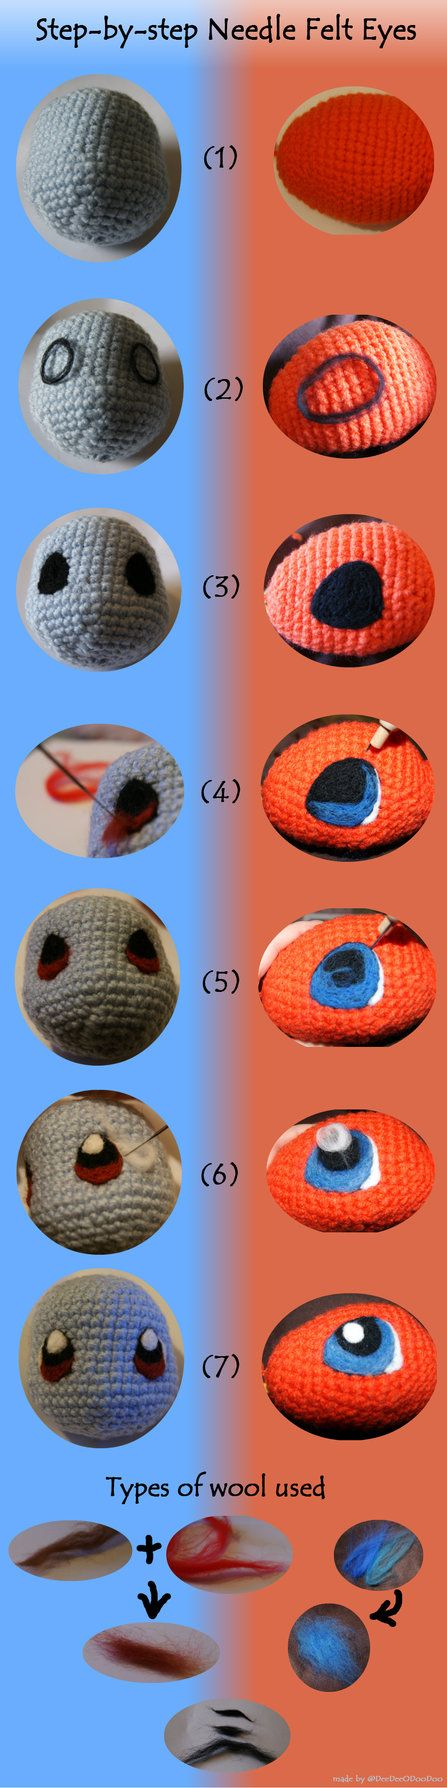 TIPS FOR EYES / OEIL, YEUX / OOG - POKEMON - step-by-step guide on how I needle felted the eyes onto my Squirtle and Charmander. I do not profess to know a lot about felting (I'm a compl...